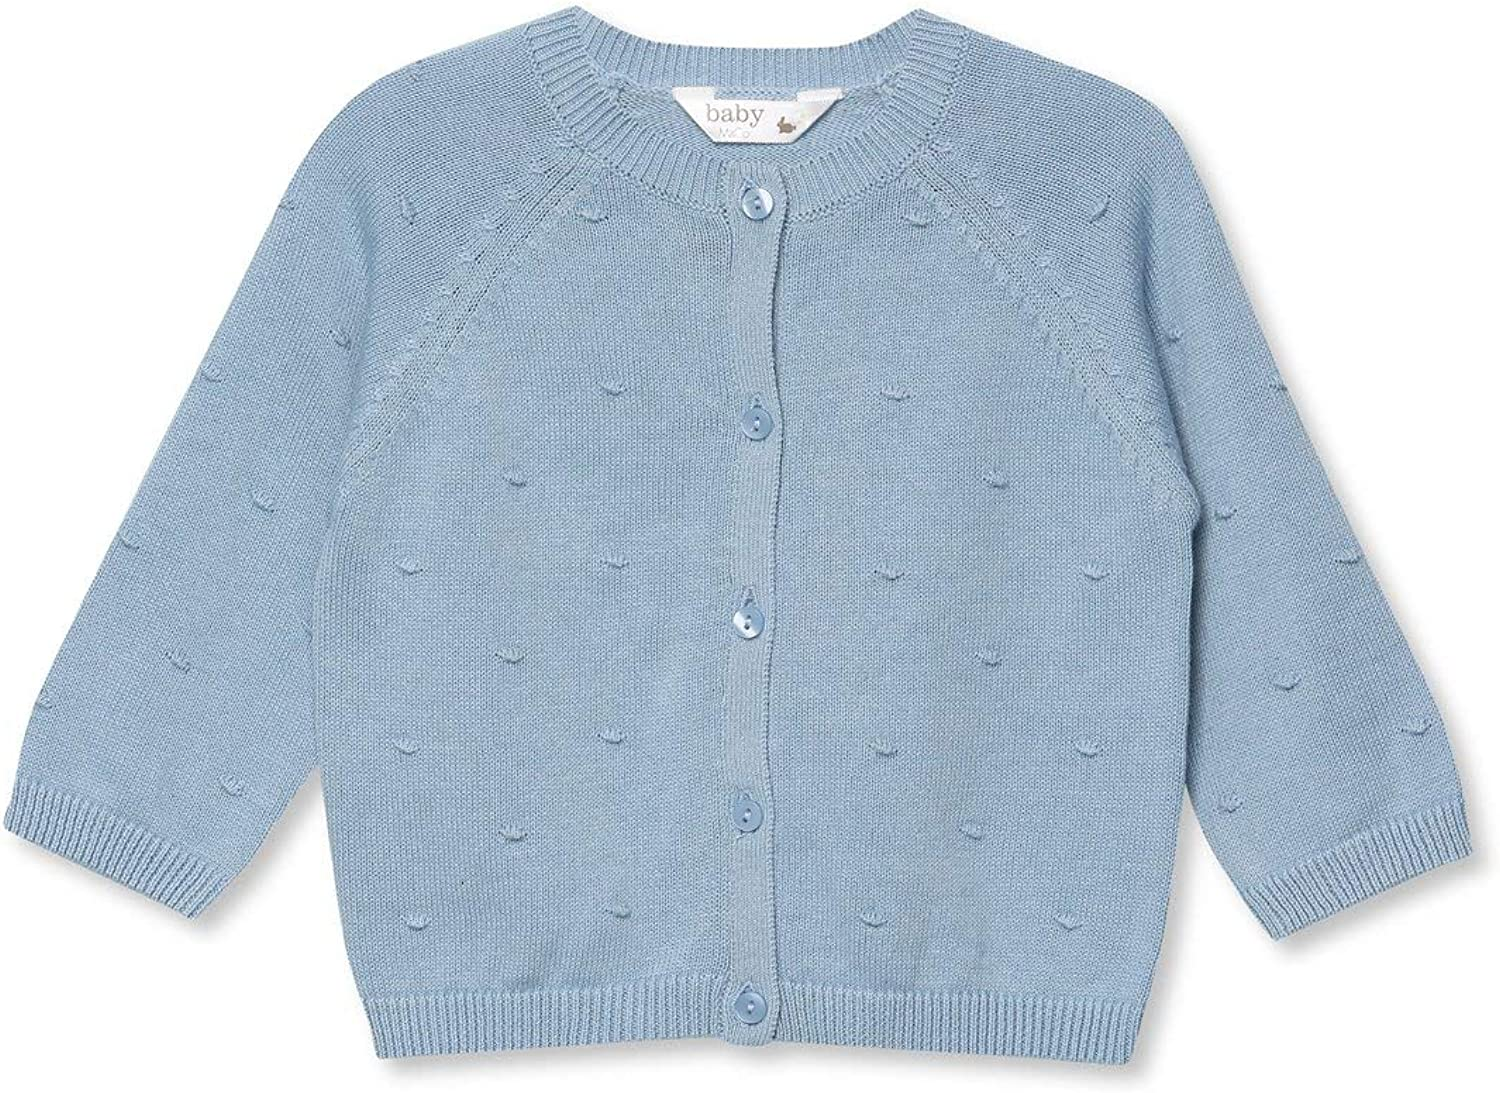 M/&Co Baby Cardigan Bobble Knit